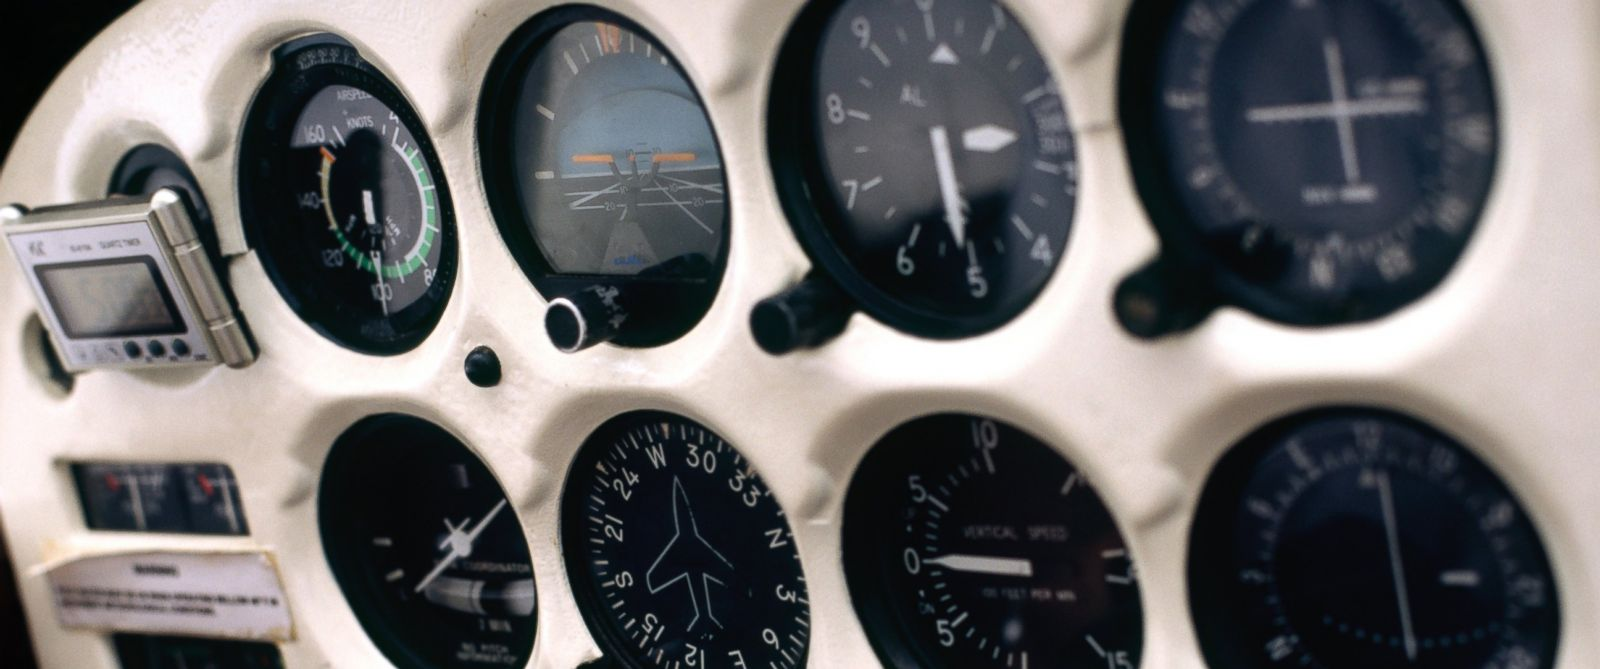 PHOTO: Passengers may have succumbed to hypoxia, or a lack of oxygen. A flight instrument console is pictured in this stock image.